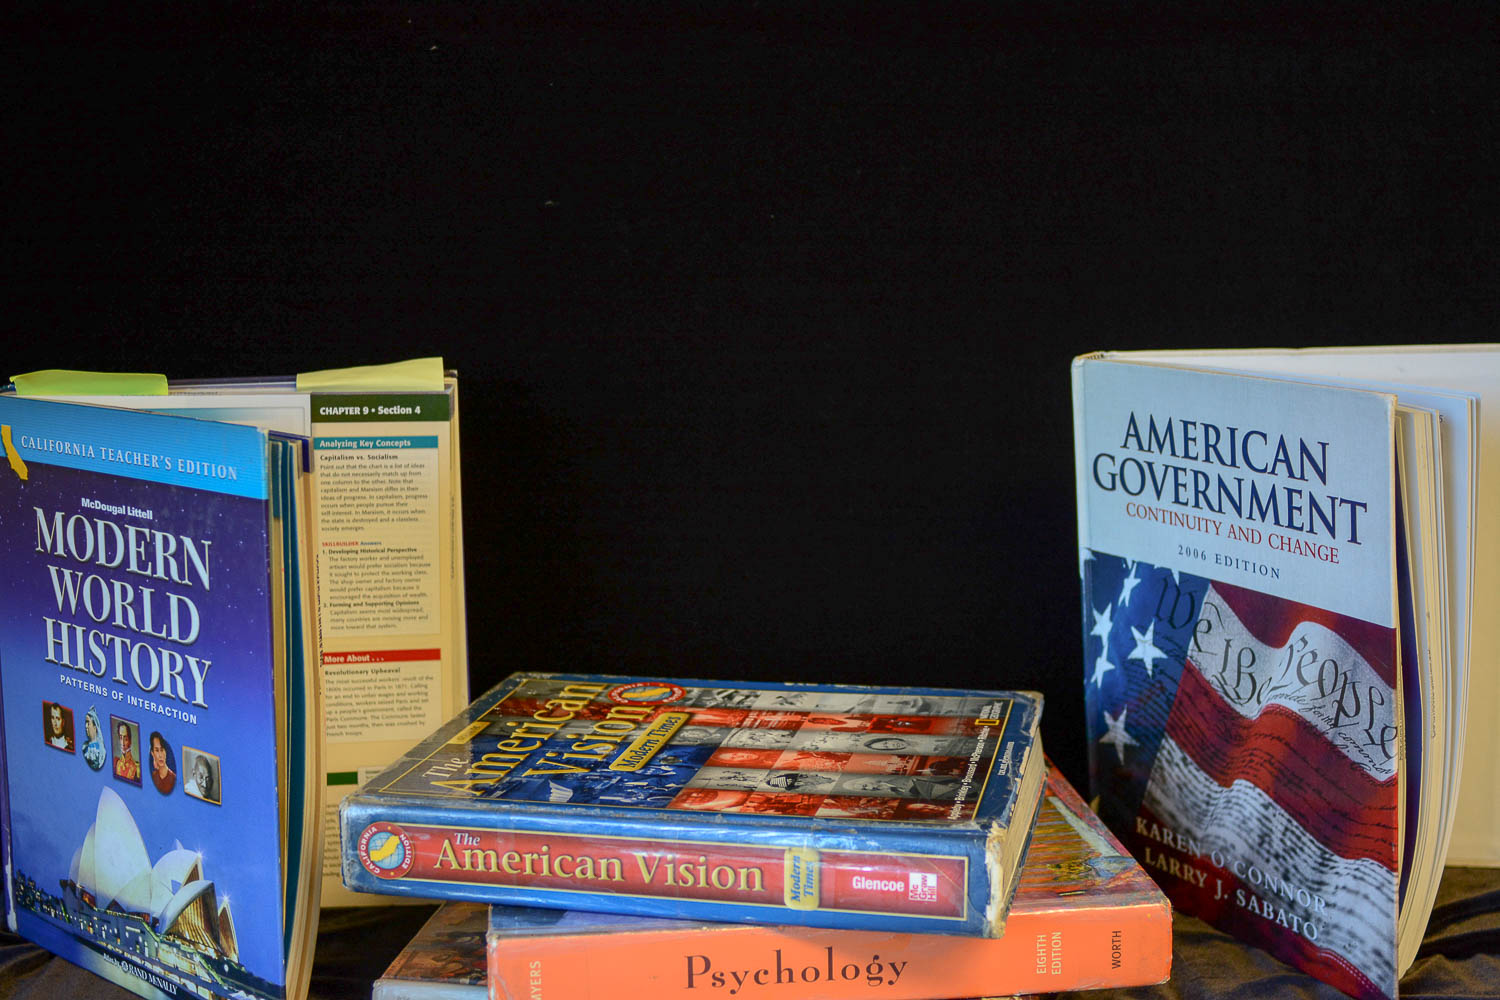 Many of the social studies textbboks, A.P. Government and Politics, World History, A.P. American History, A.P Physcology, and other social studies textbooks, haven't been updated to include more modern history. The most recent update to the history textbooks was in 2006.